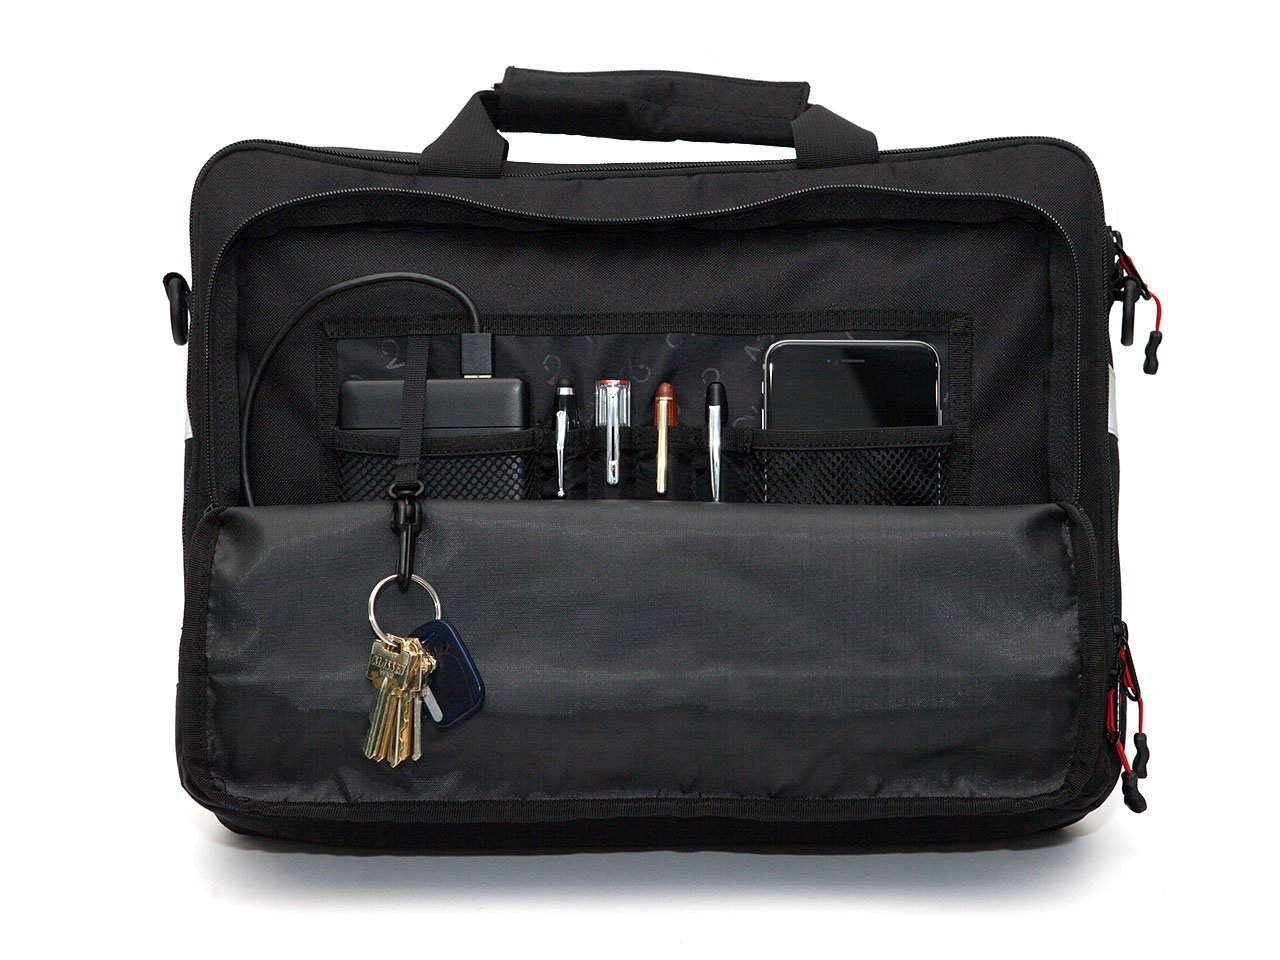 Black, Graphite, Canvas - Bike Bags - Pannier Briefcase Convertible (2018)